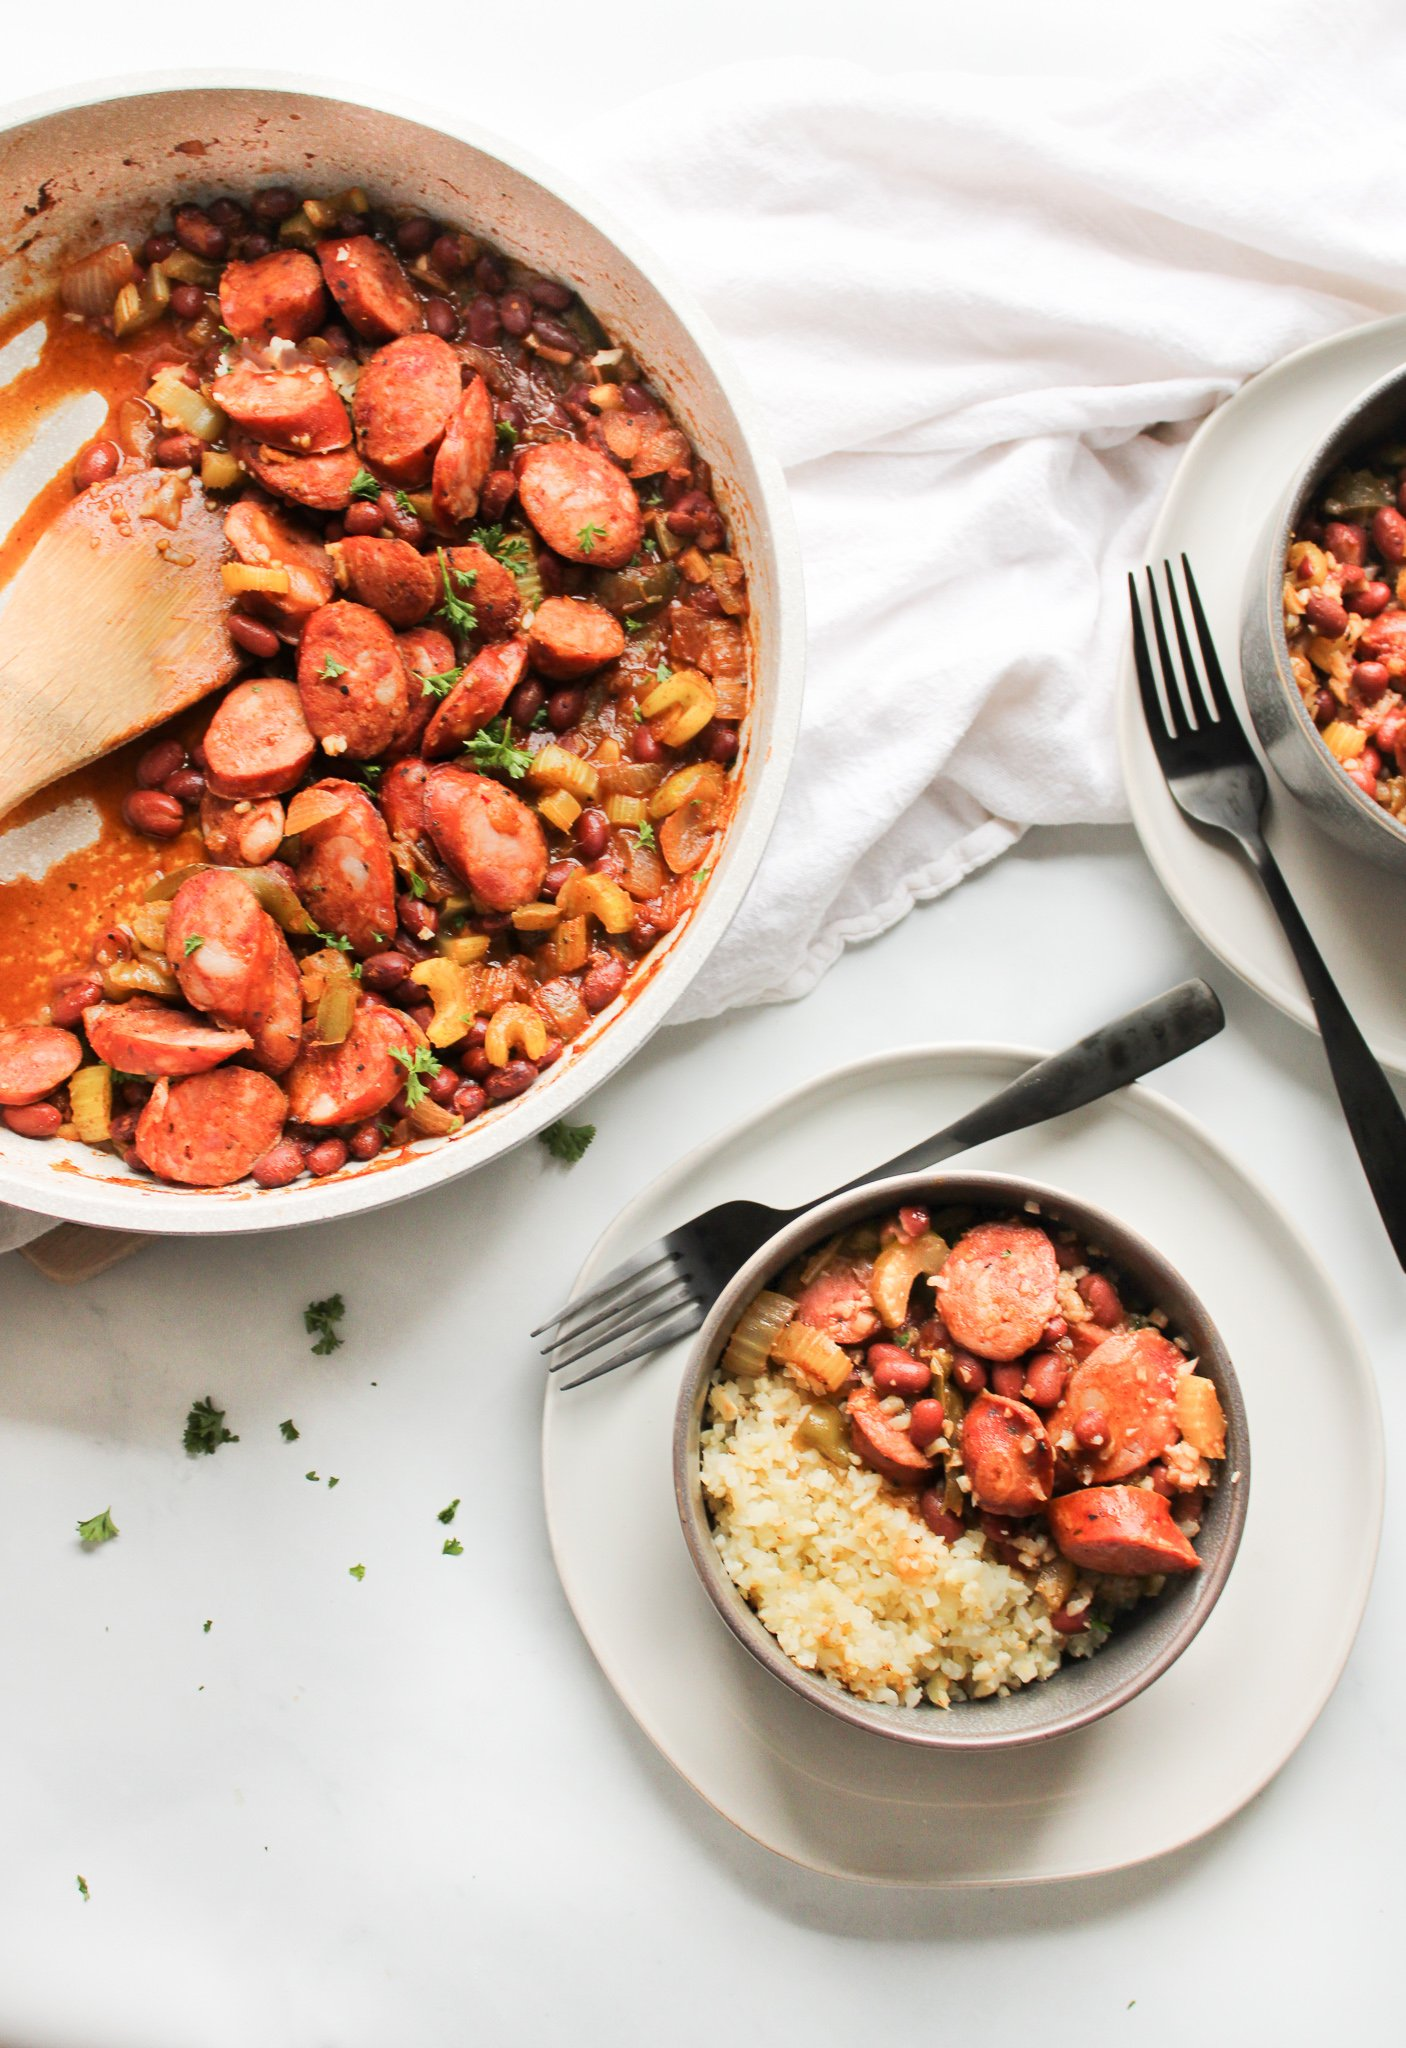 Louisiana red beans and cauliflower rice being served from a white skillet into dark grey bowls over cream colored plates and black forks.